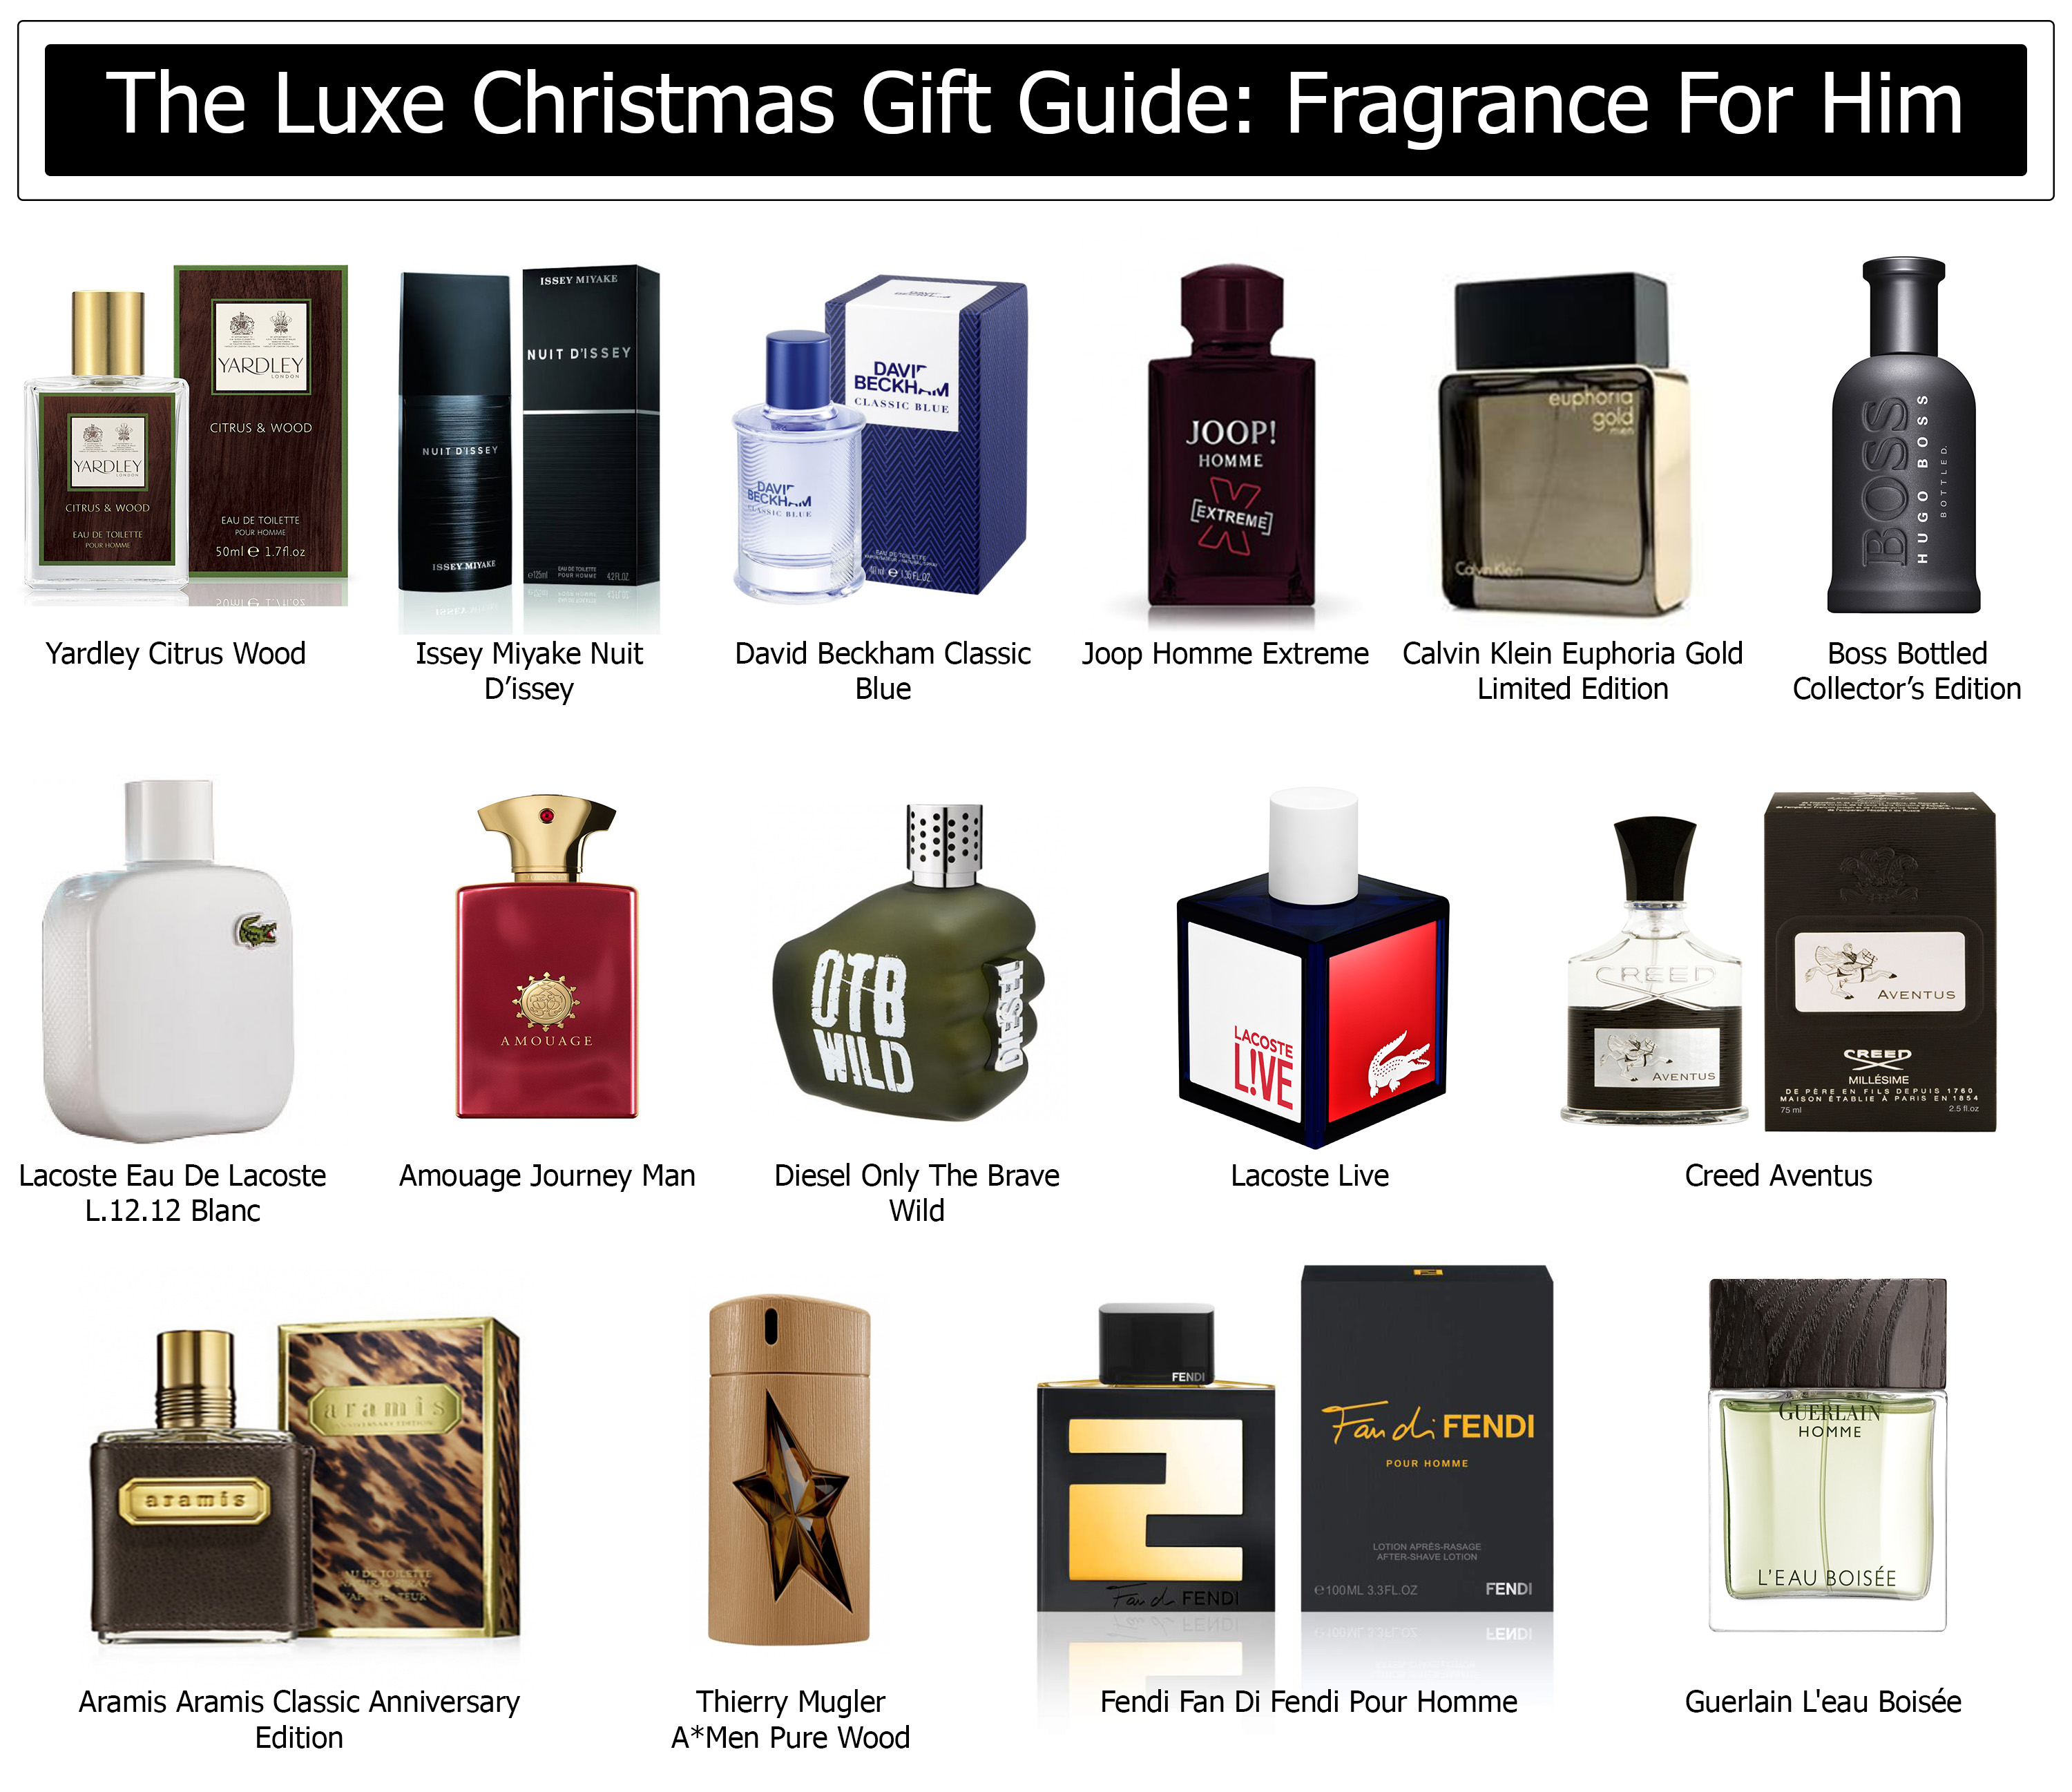 Best Guy Christmas Gifts 2014 ✓ The Christmass Gift Inspirations